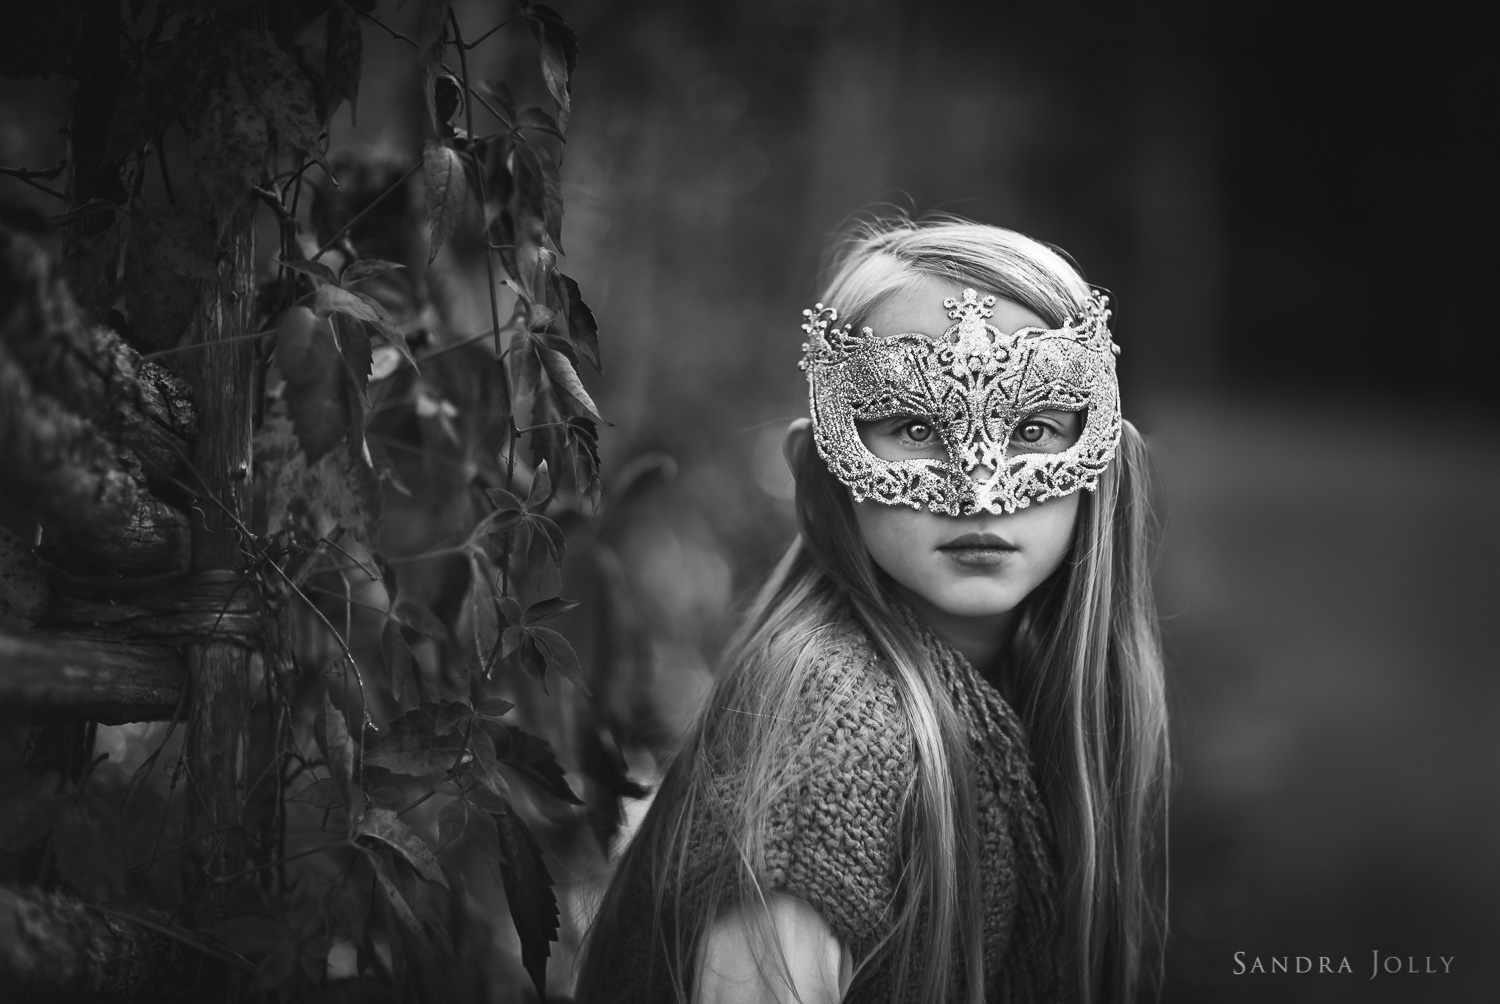 black-and-white-photo-of-girl-in-a-mask-by-Stockholm-barnfotograf-Sandra-Jolly.jpg